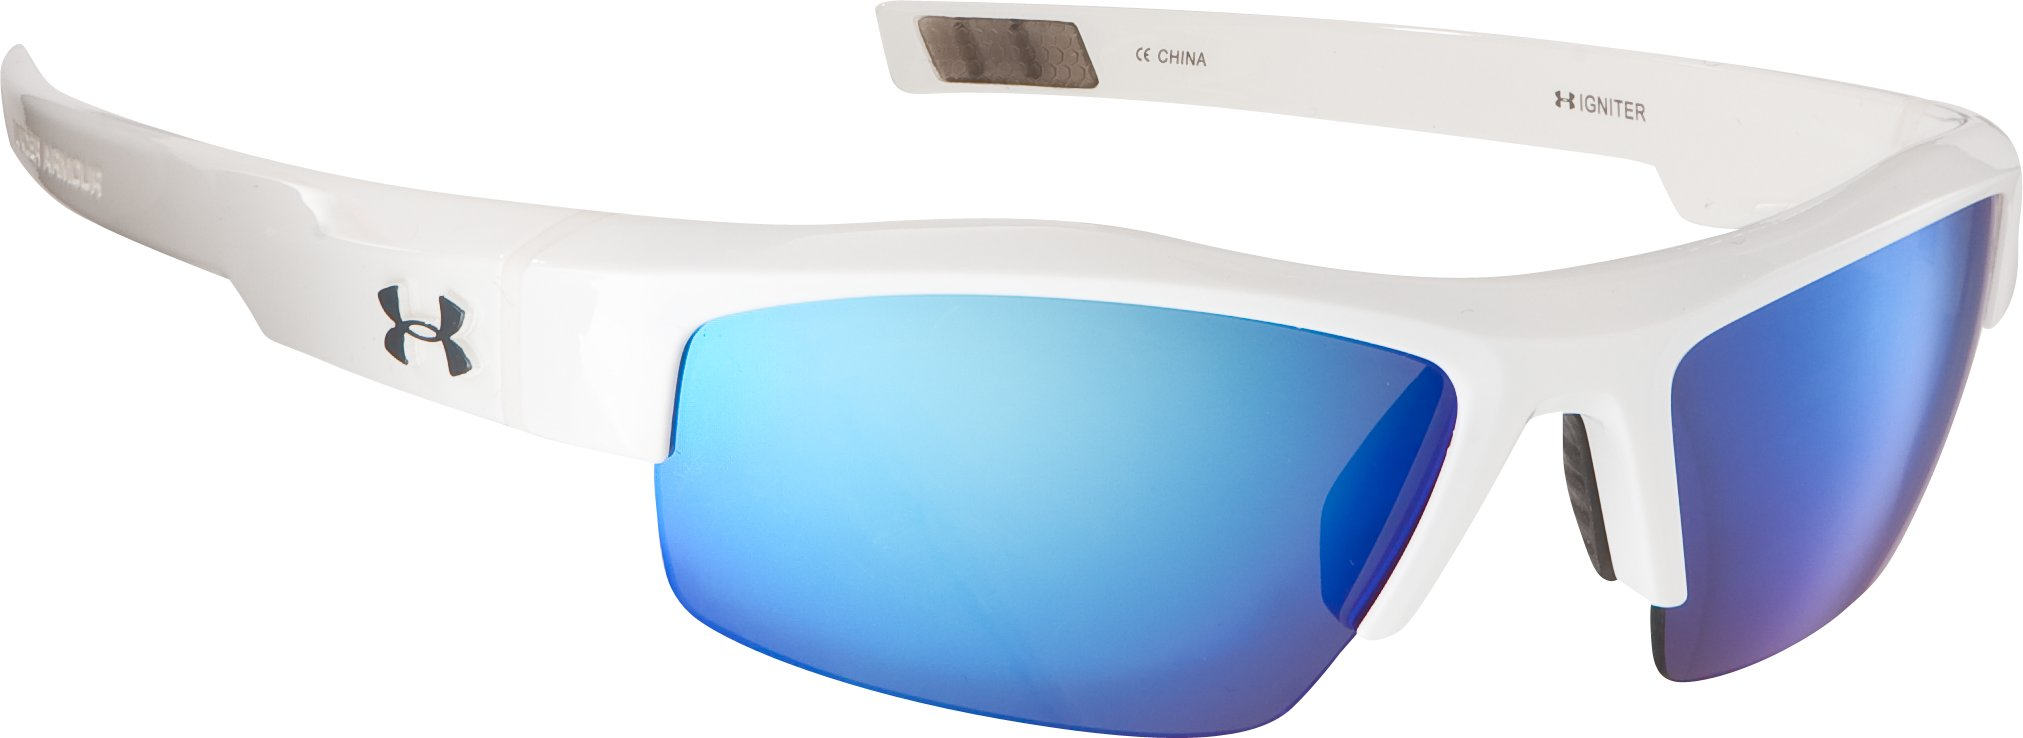 UA Igniter Multiflection™ Sunglasses, Shiny White